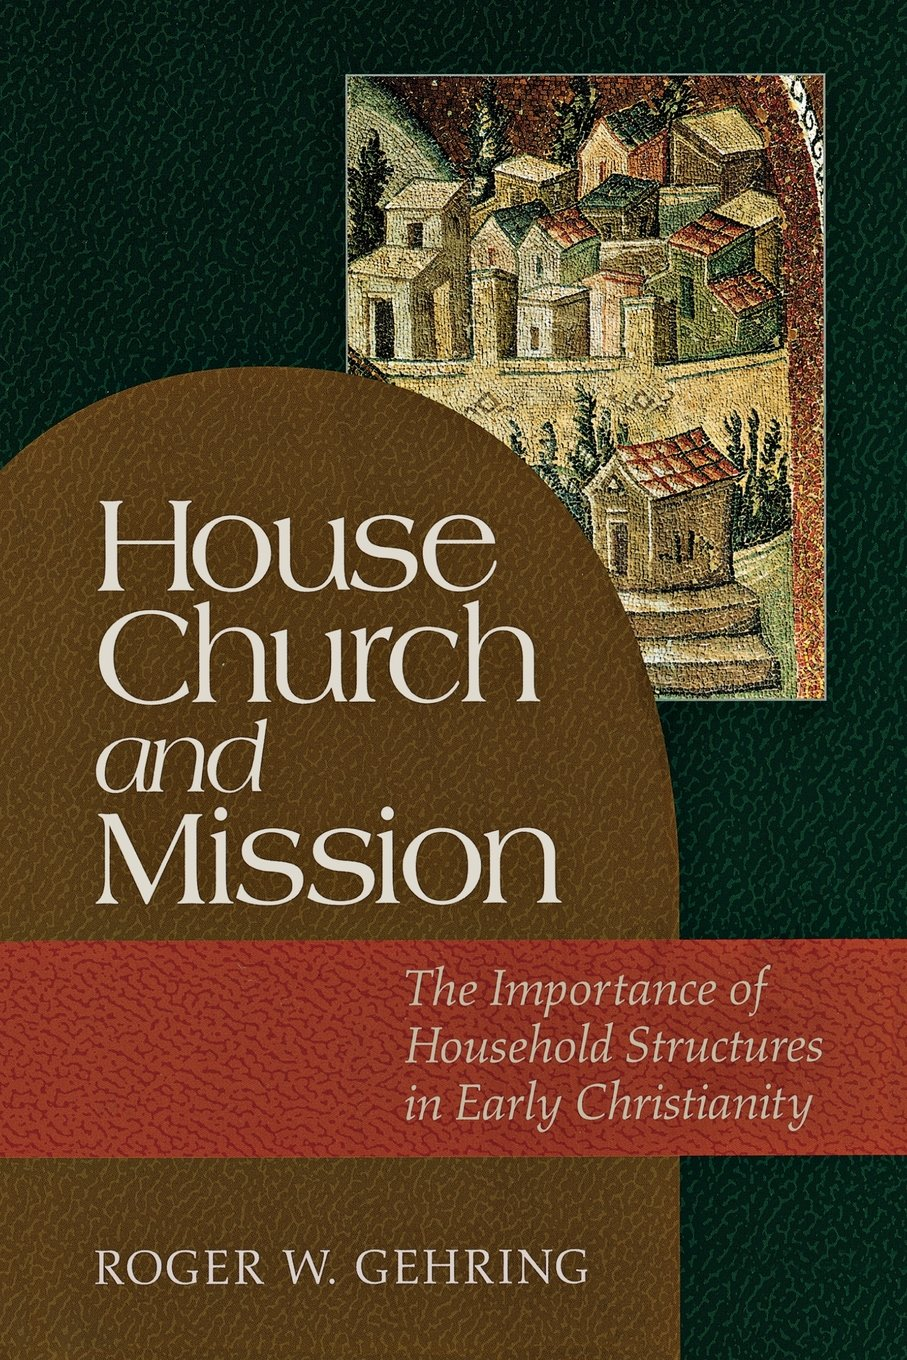 Download House Church and Mission: The Importance of Household Structures in Early Christianity PDF